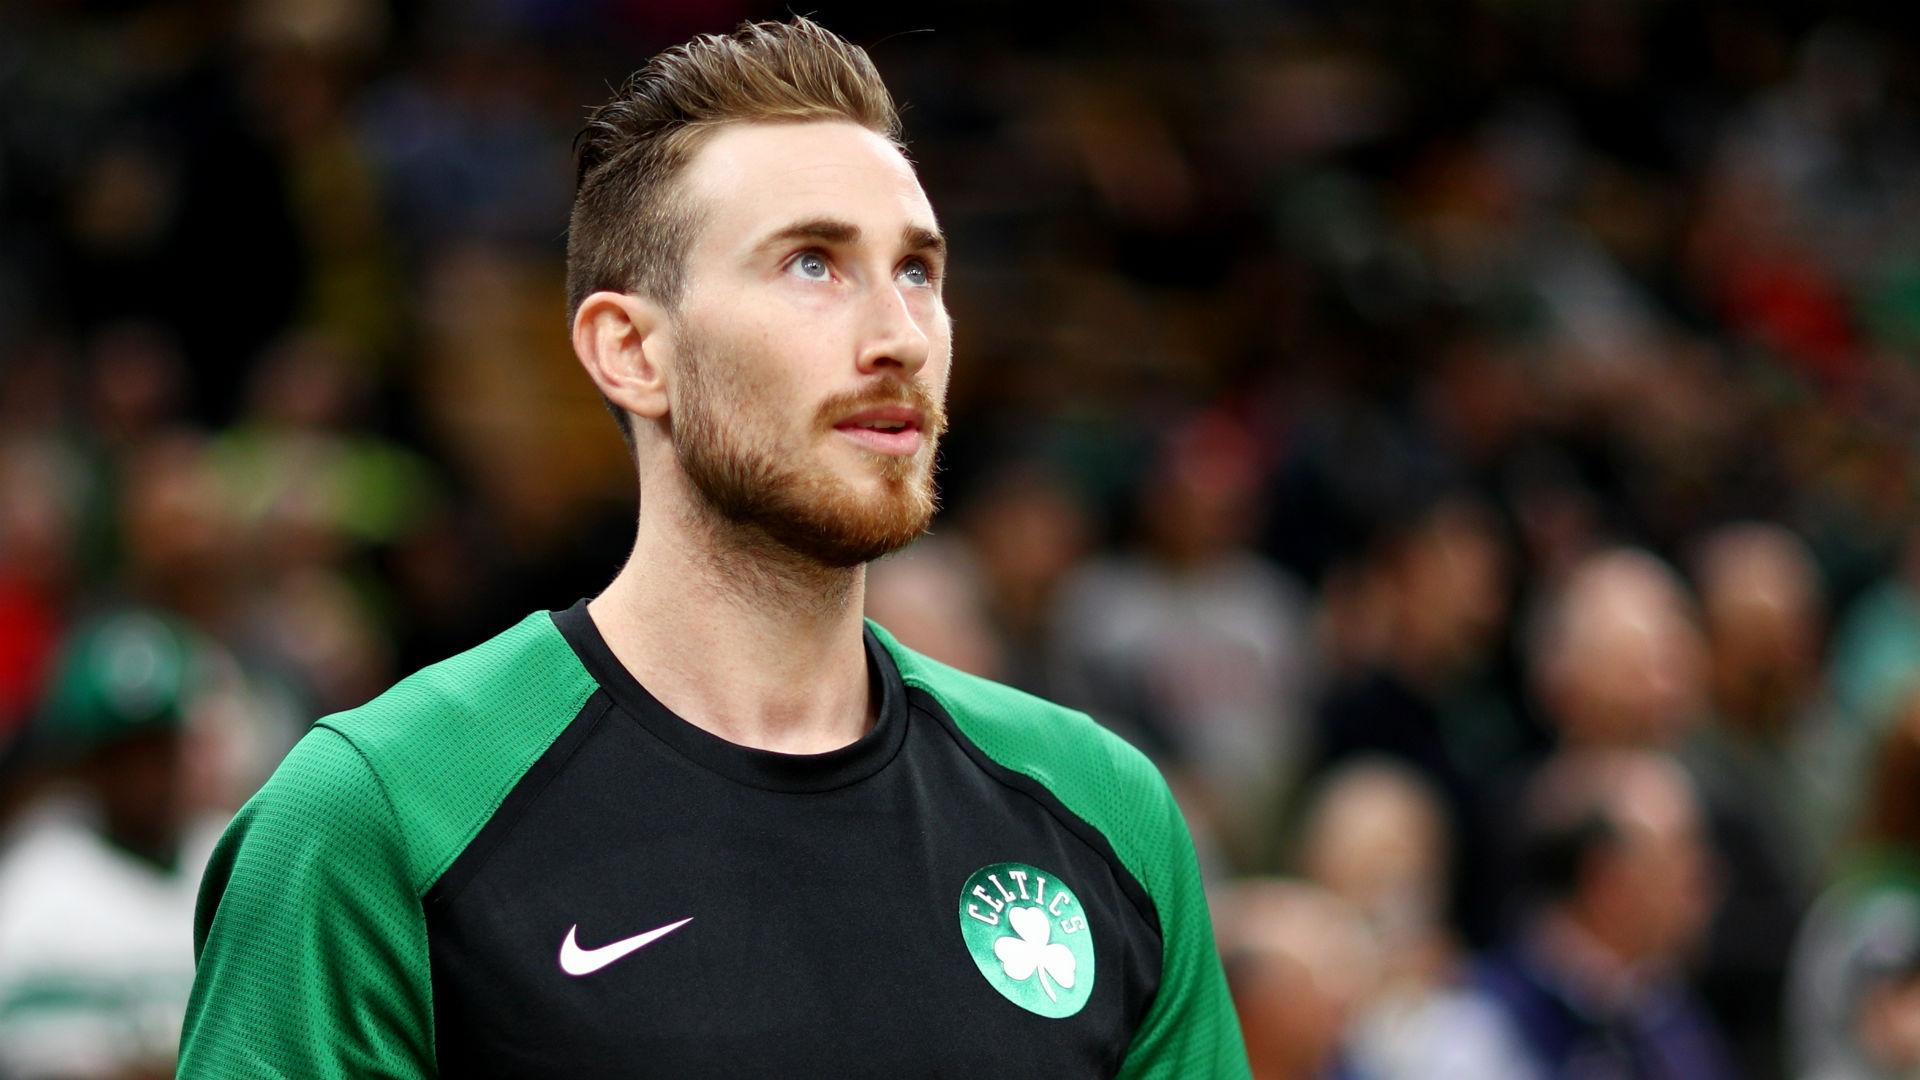 Celtics move F Gordon Hayward out of starting lineup